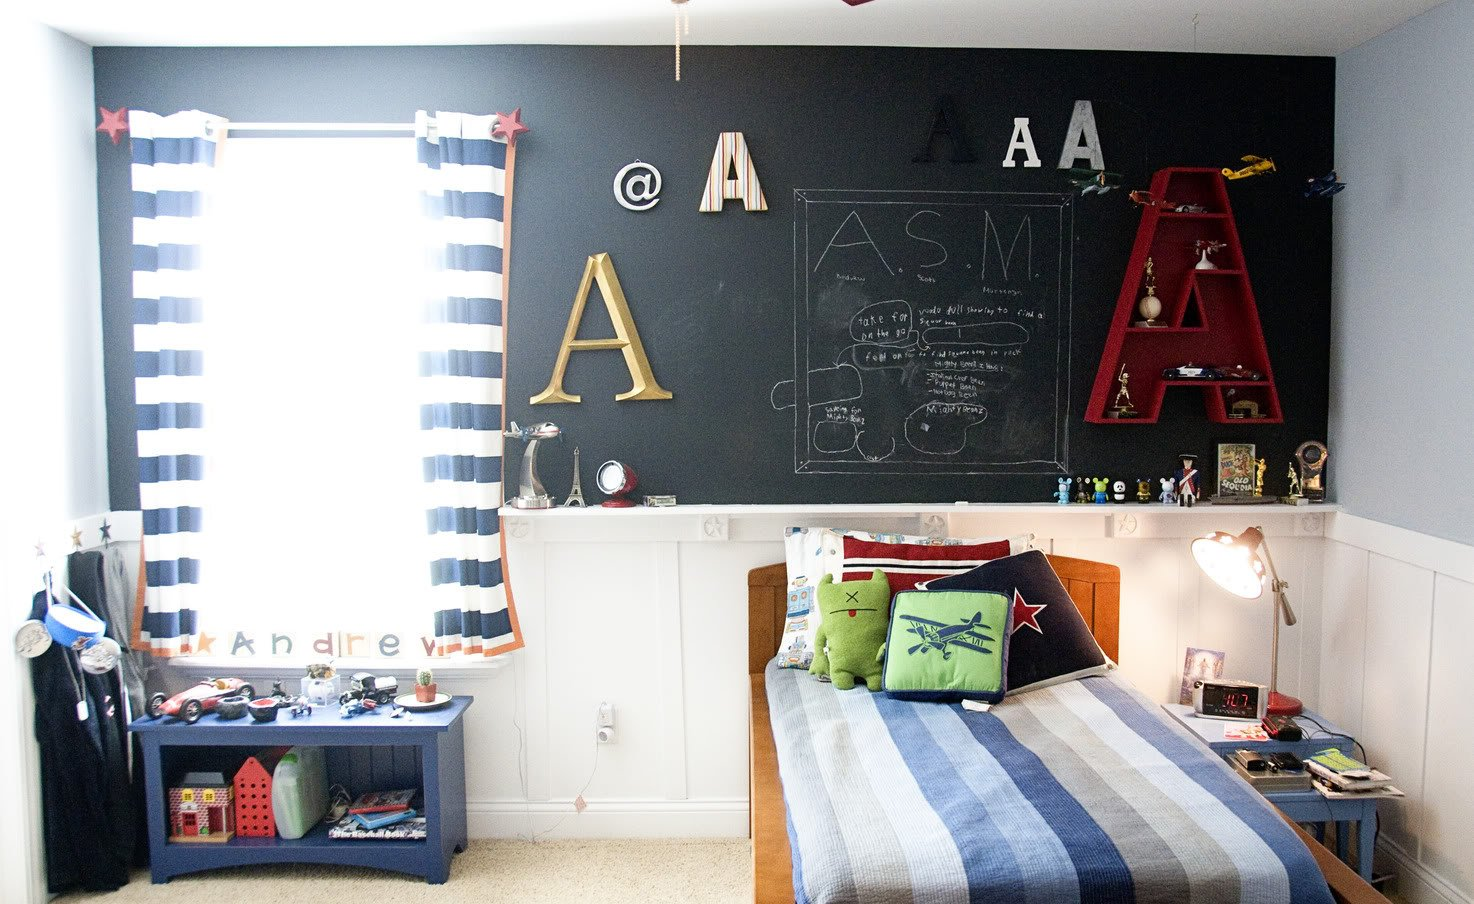 Cool bedroom ideas 12 boy rooms today 39 s creative life for Funky bedroom ideas